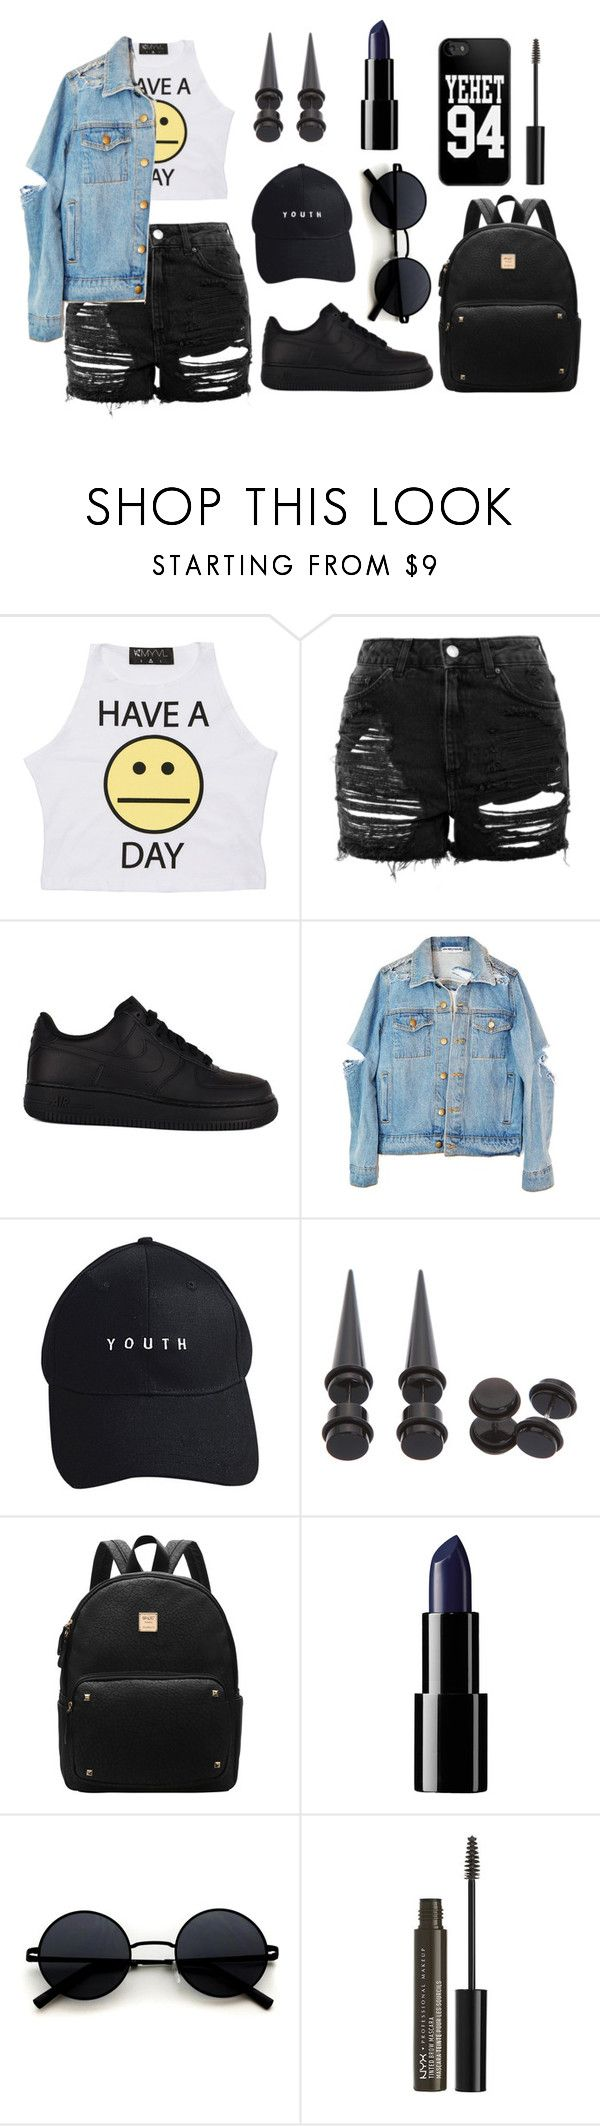 """- how's this"" by yoongismiles ❤ liked on Polyvore featuring Topshop, NIKE, High Heels Suicide, Hot Topic and NYX"